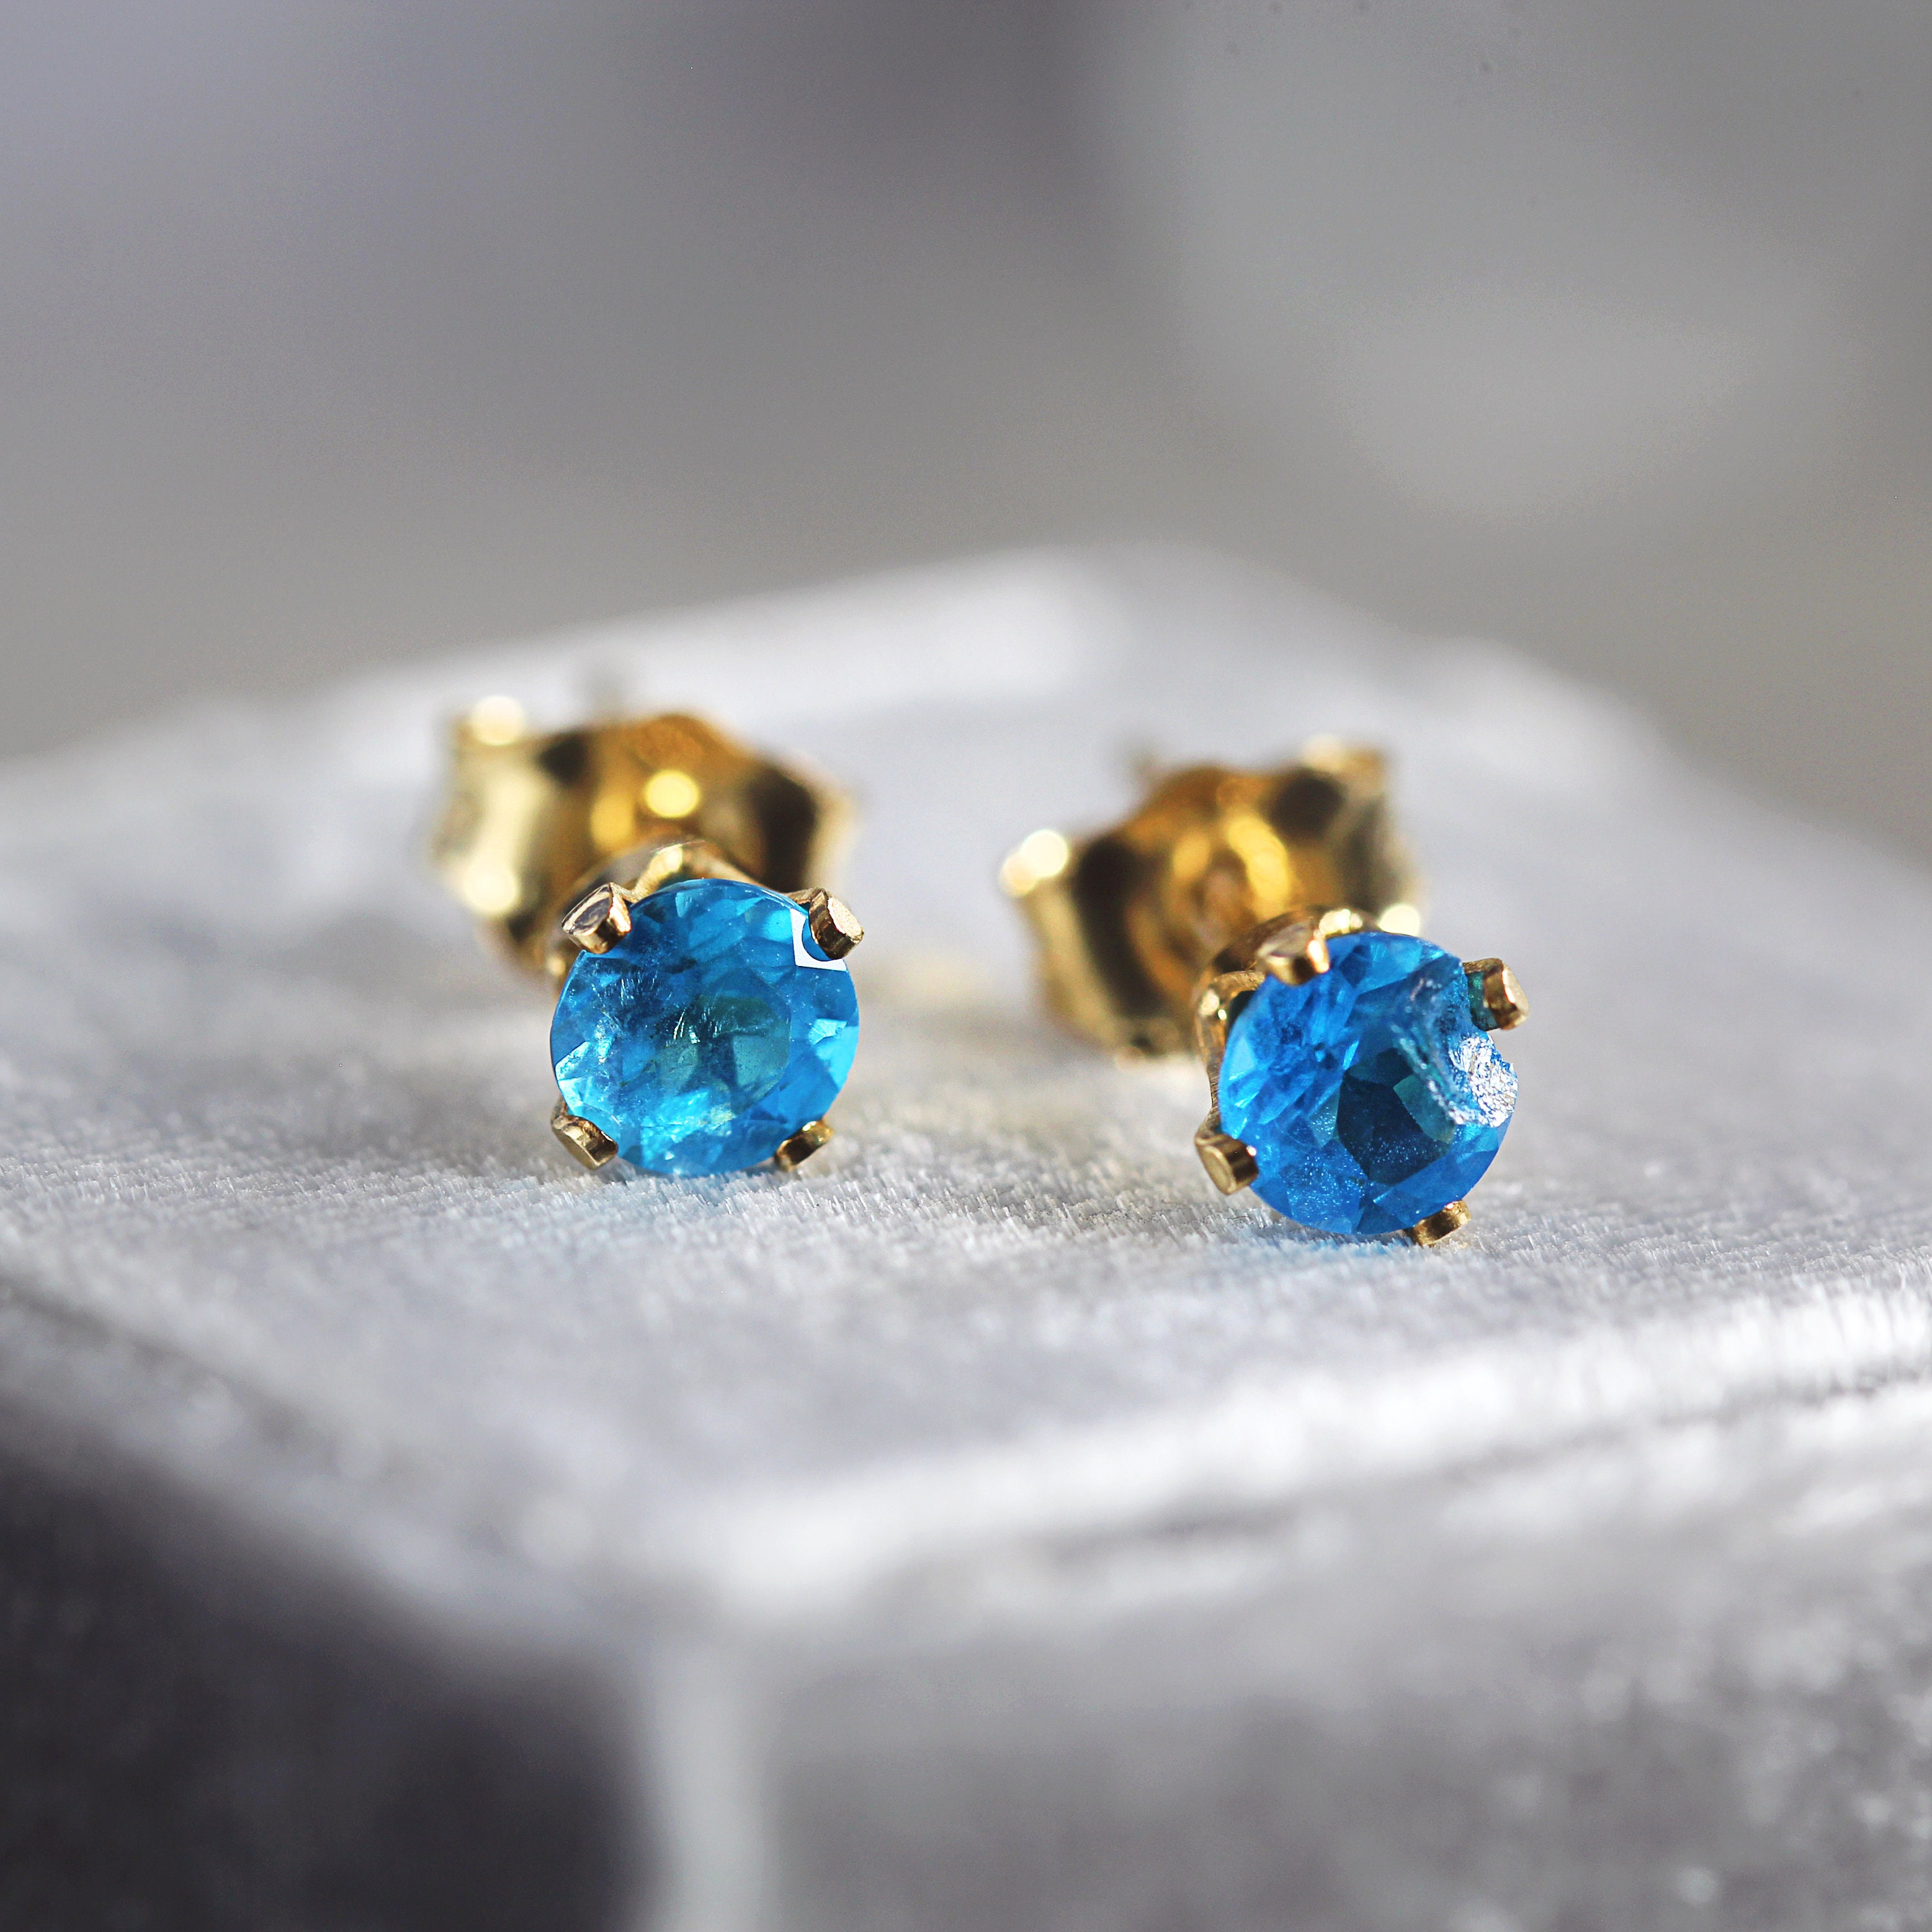 46e4c3870 Neon Blue Apatite Earrings - Apatite Stud Earrings